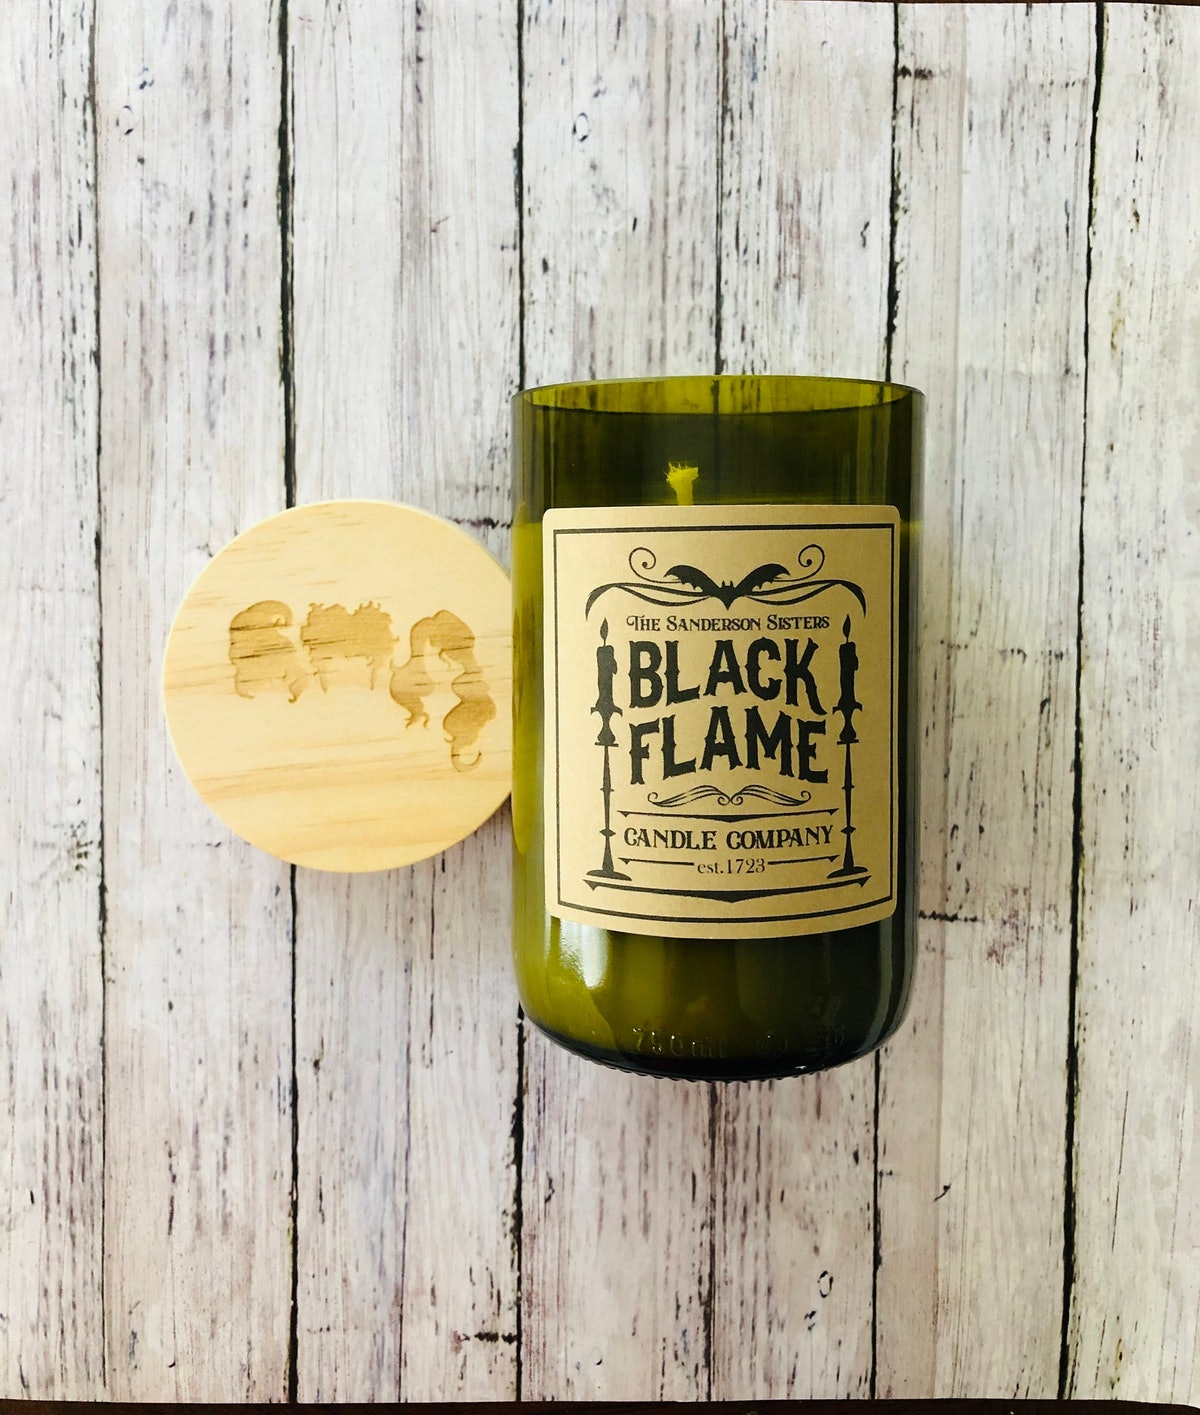 The Sanderson Sisters Black Flame Candle Company